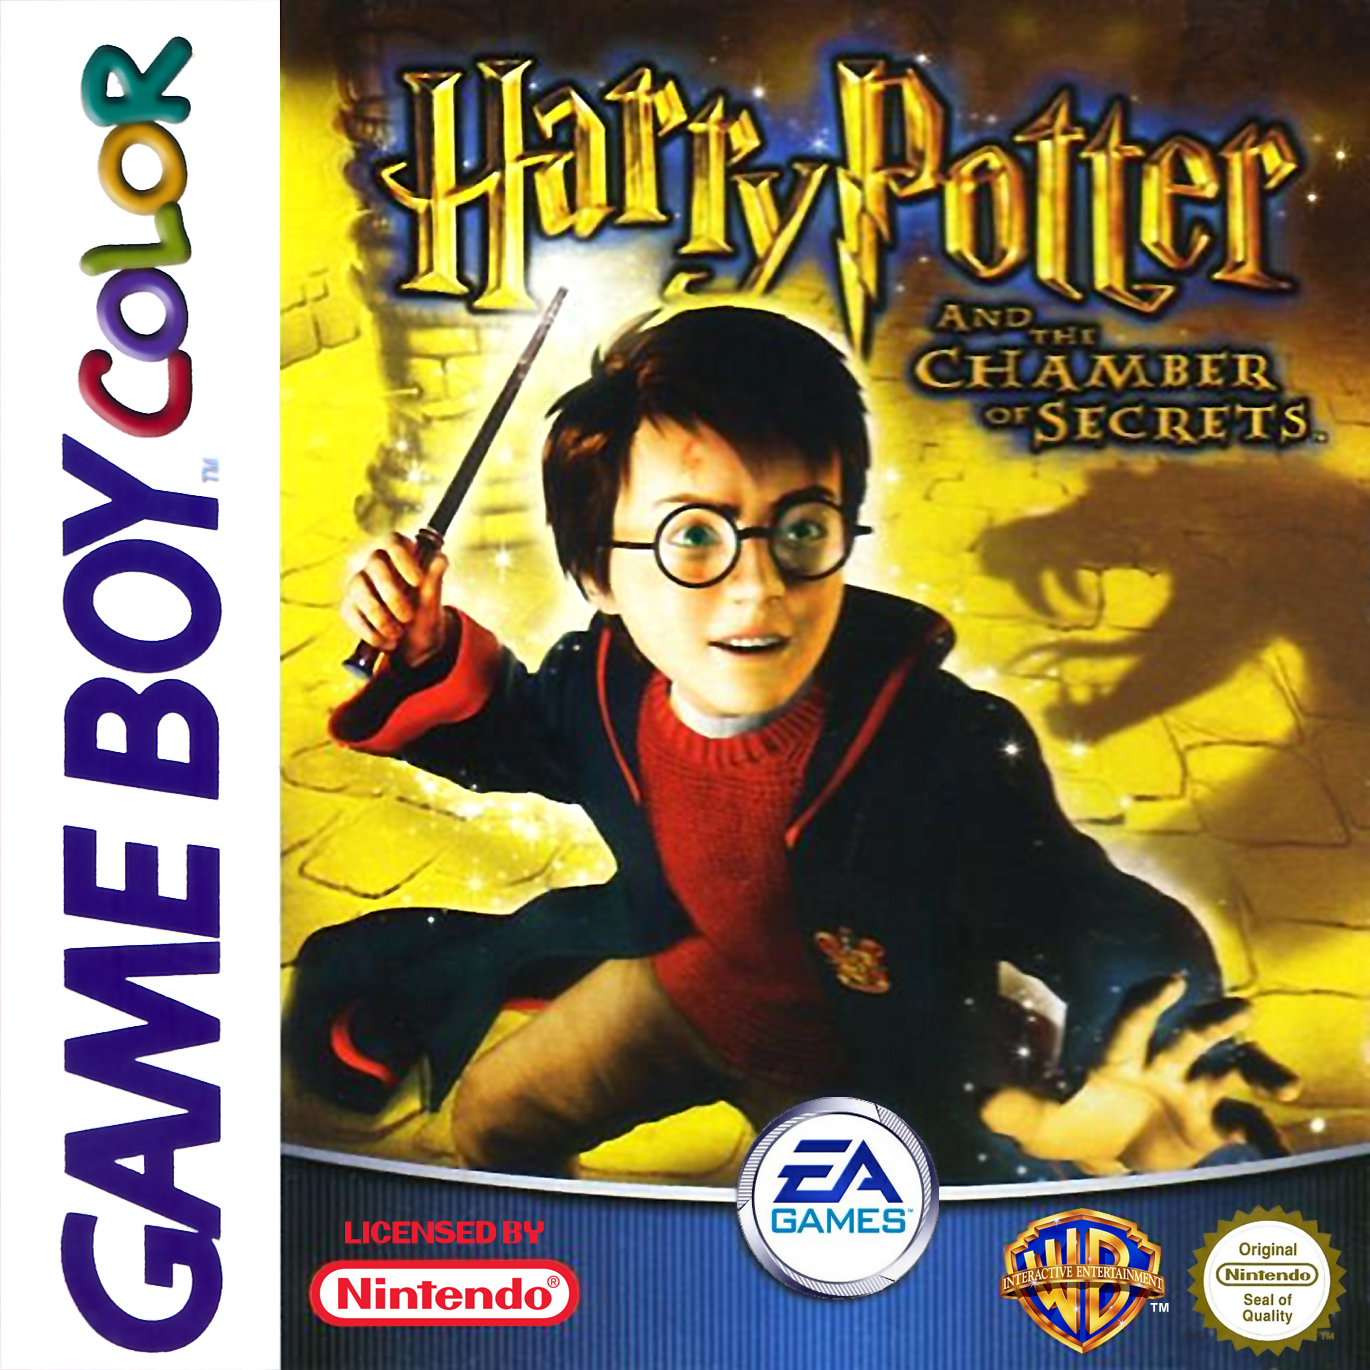 Game boy color online games - Harry Potter And The Chamber Of Secrets Nintendo Game Boy Color Cover Artwork